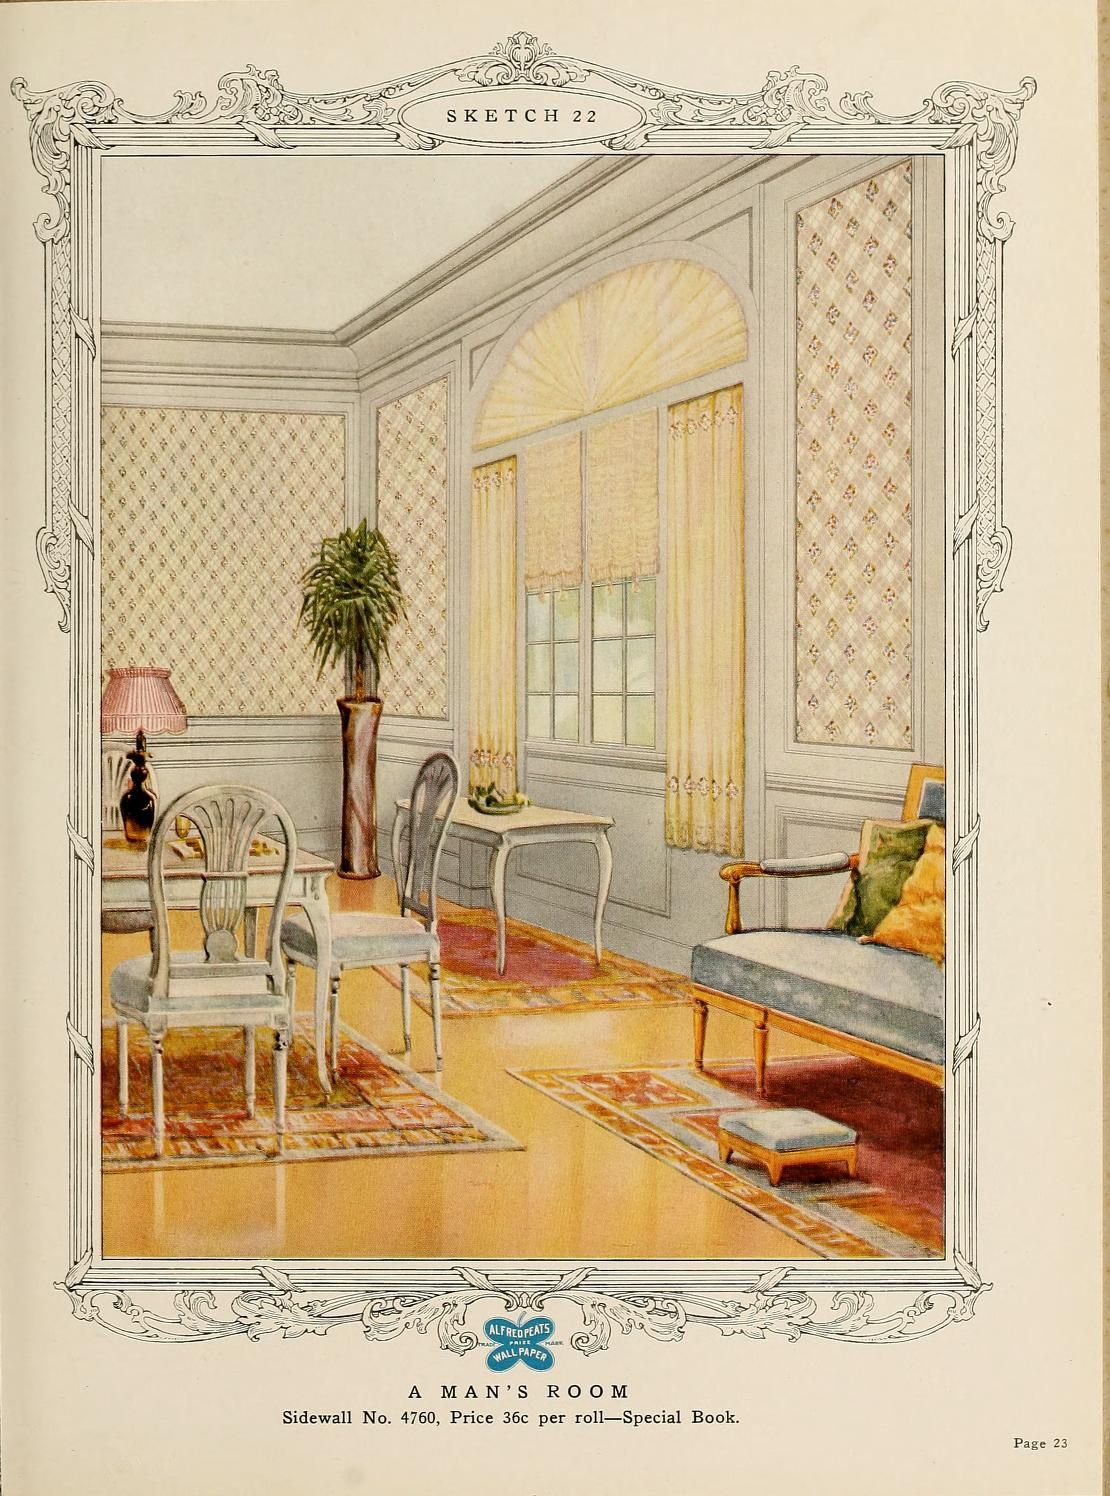 Home decoration, 1917 / Alfred Peats Co.